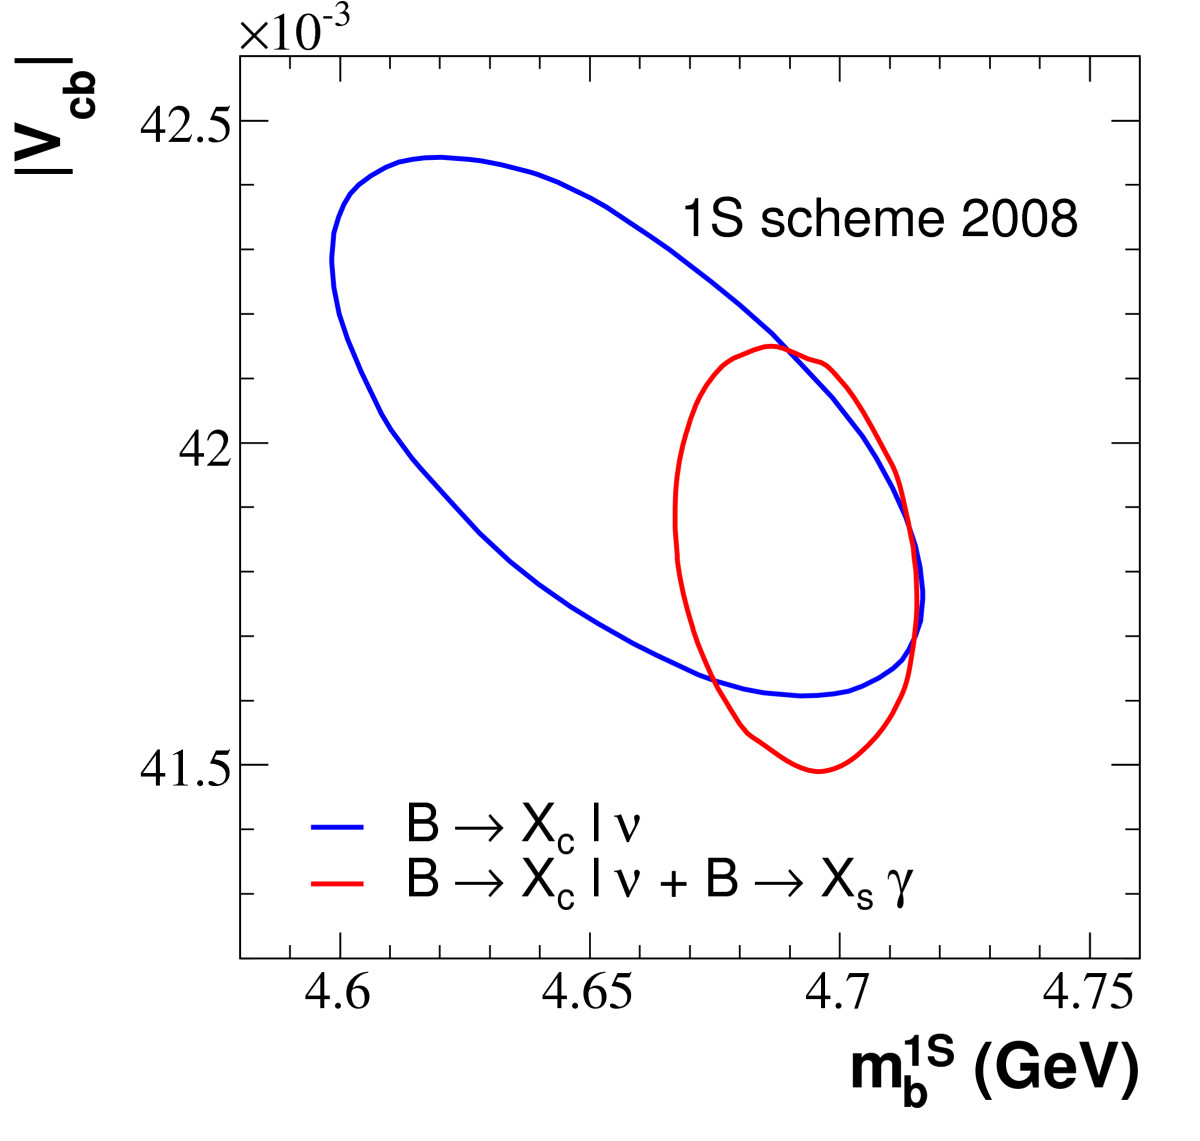 http://static-content.springer.com/image/art%3A10.1186%2F1754-0410-3-3/MediaObjects/13066_2009_Article_17_Fig24_HTML.jpg